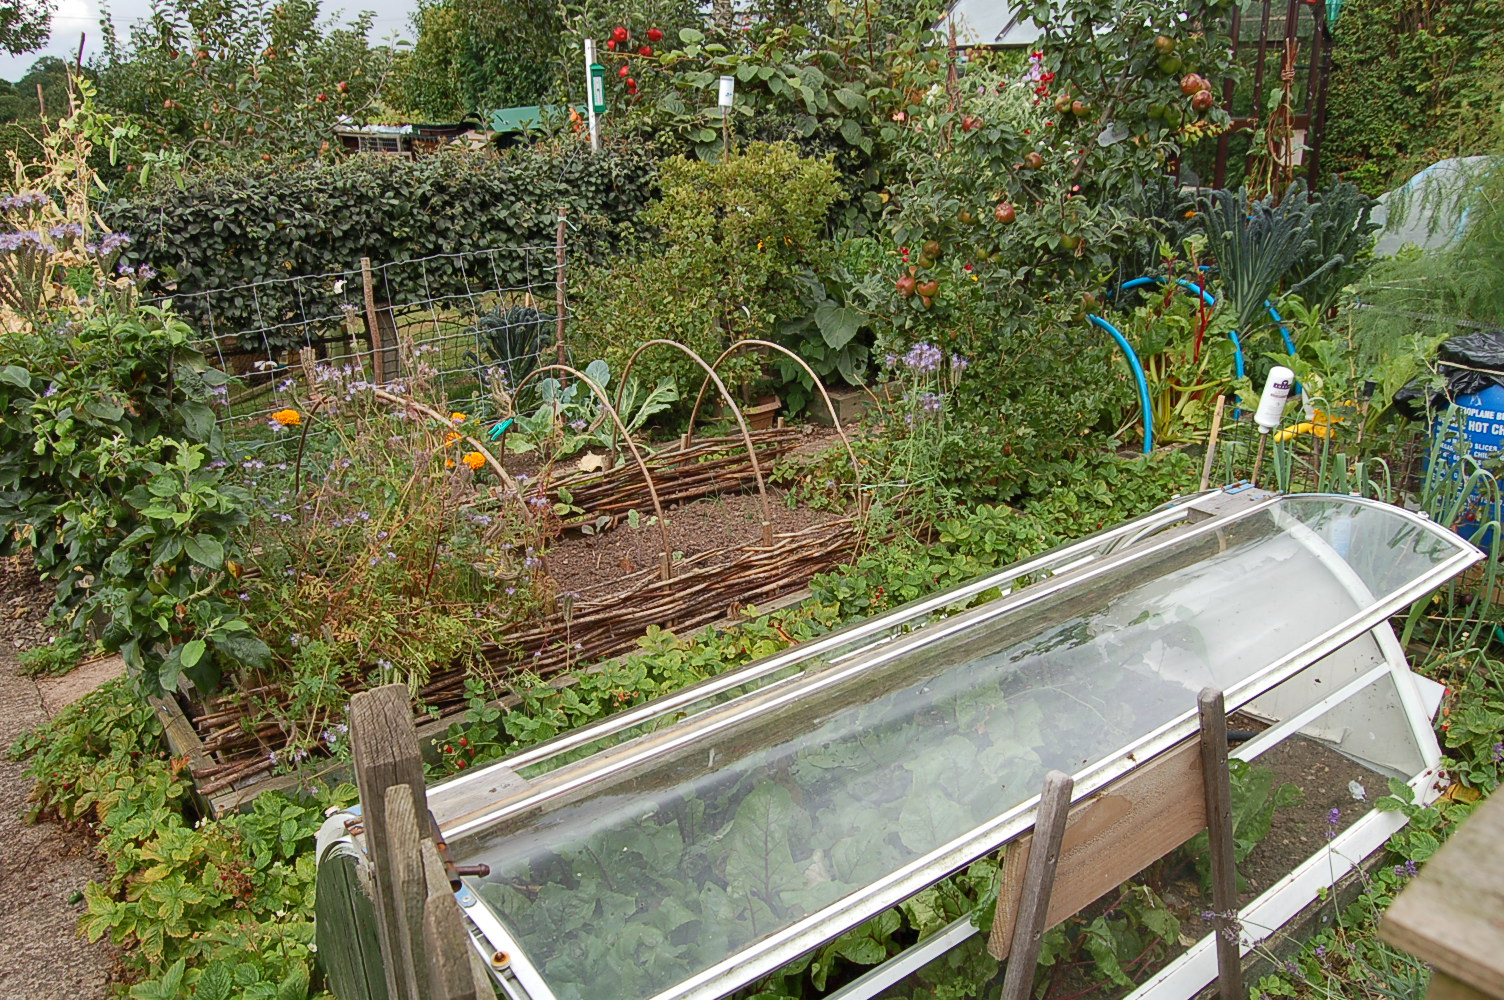 Permaculture Garden | greenbenchramblings on Backyard Permaculture Design id=65160